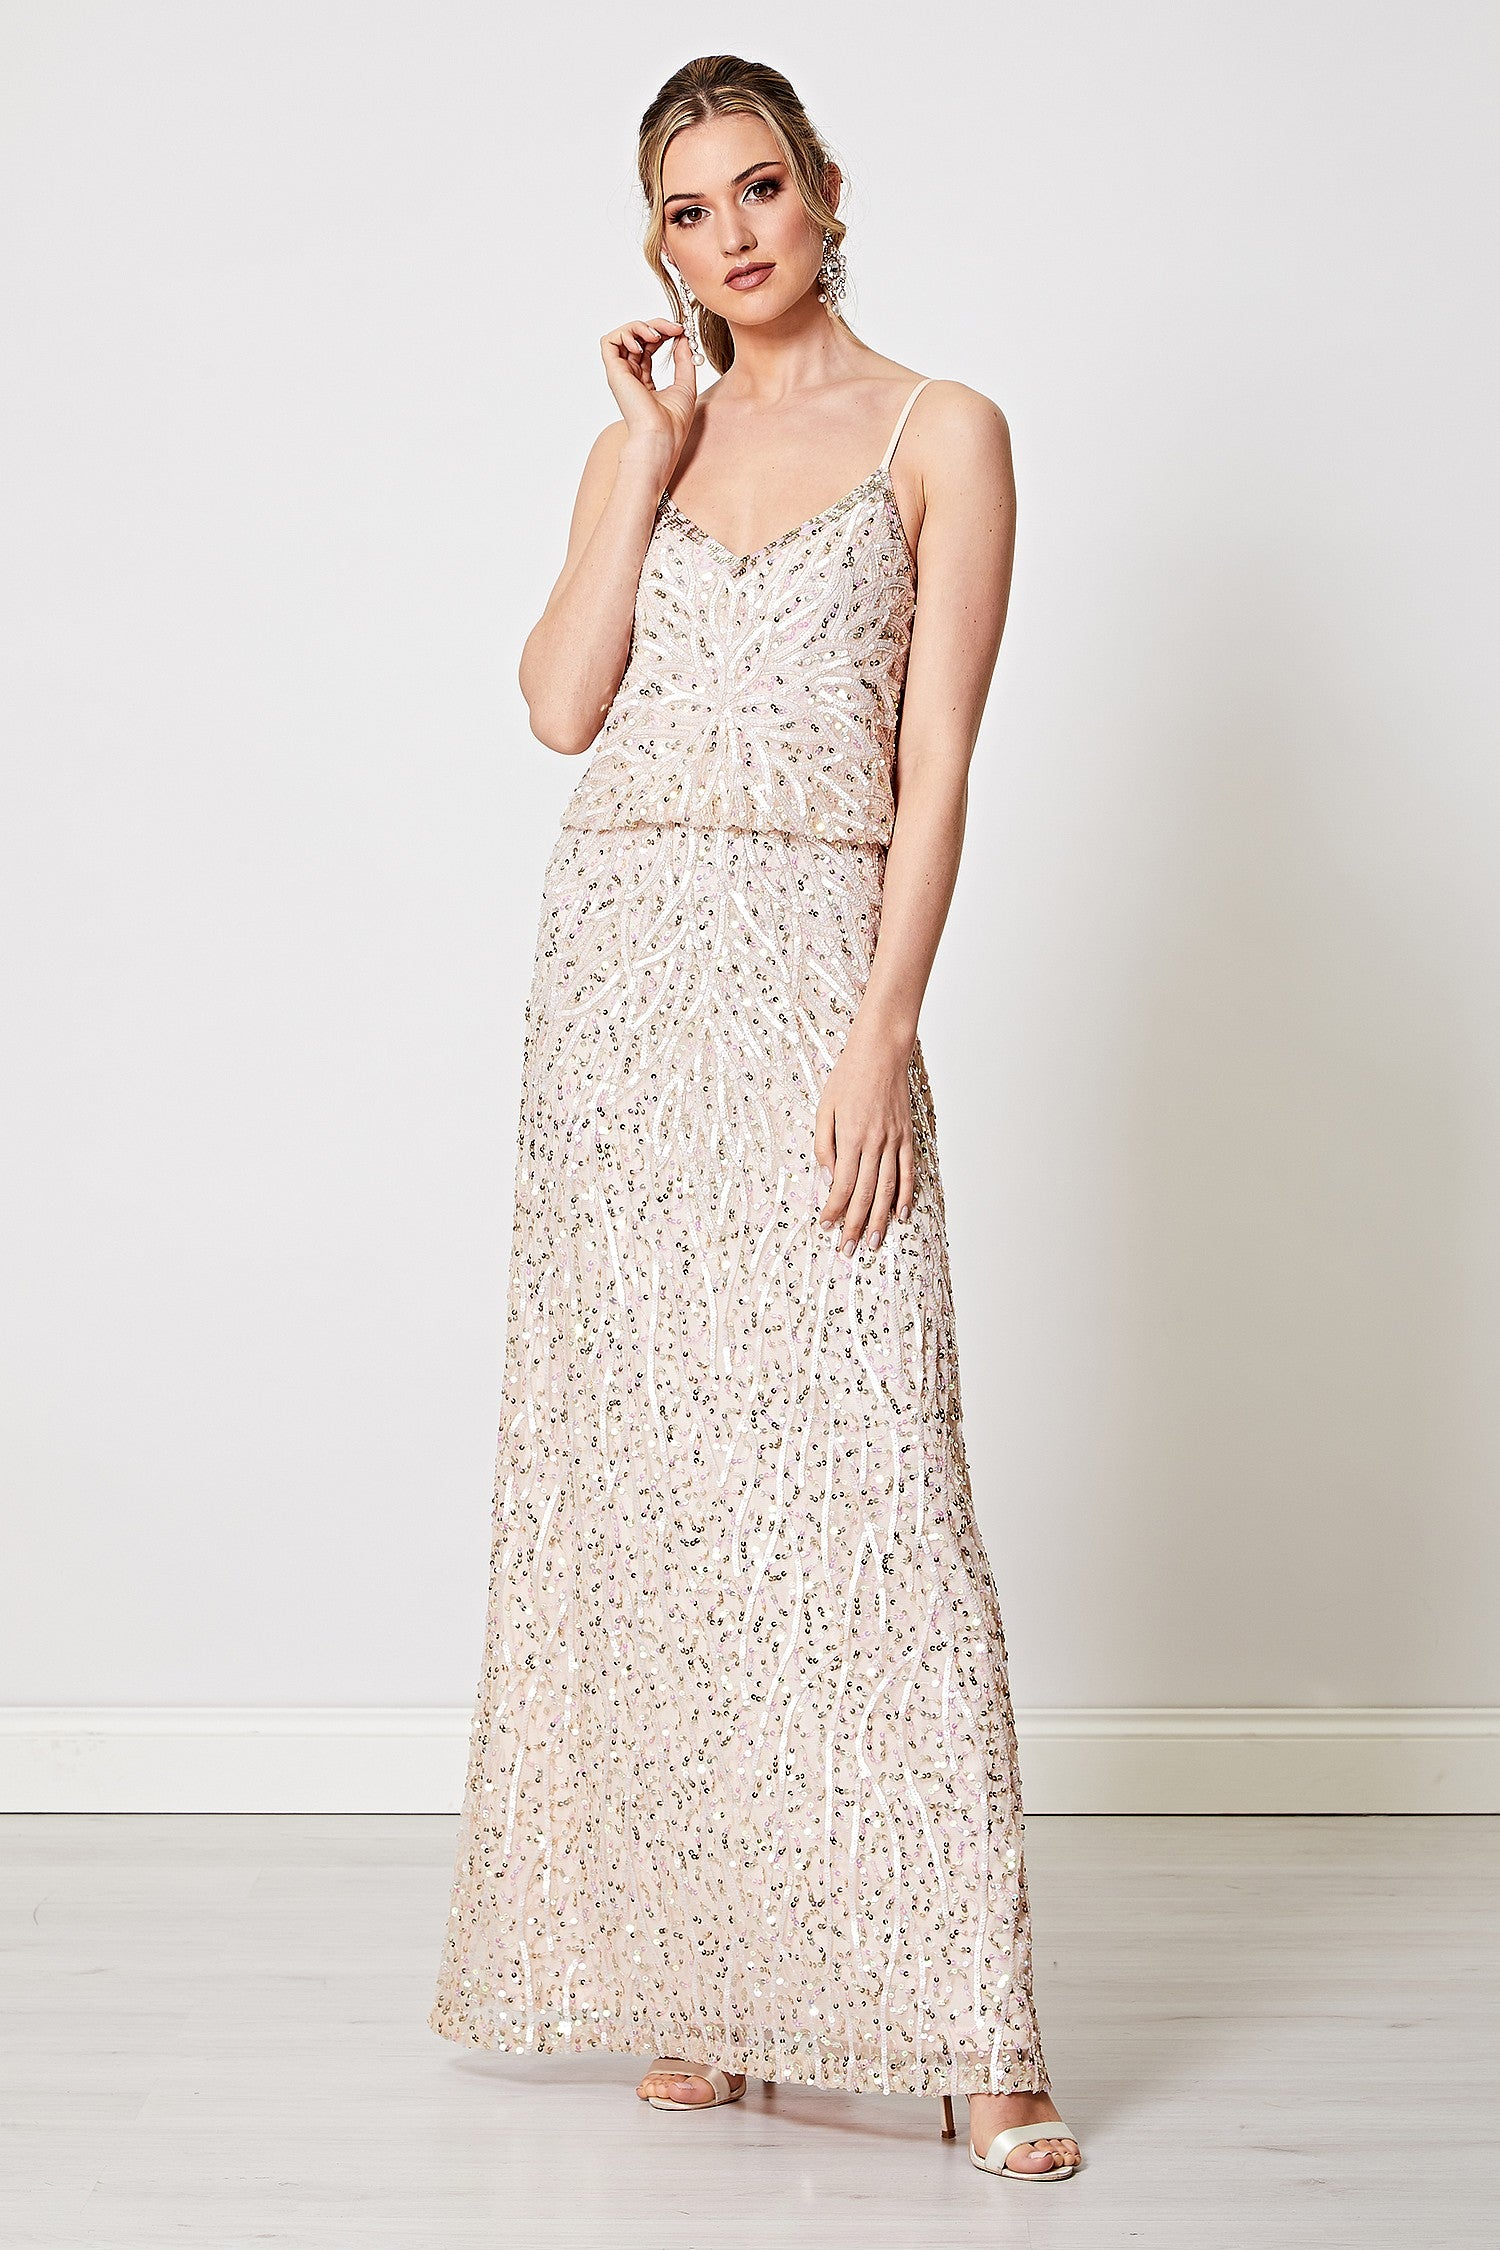 Agata Light Pink Embellished Sequin Cami Maxi Dress